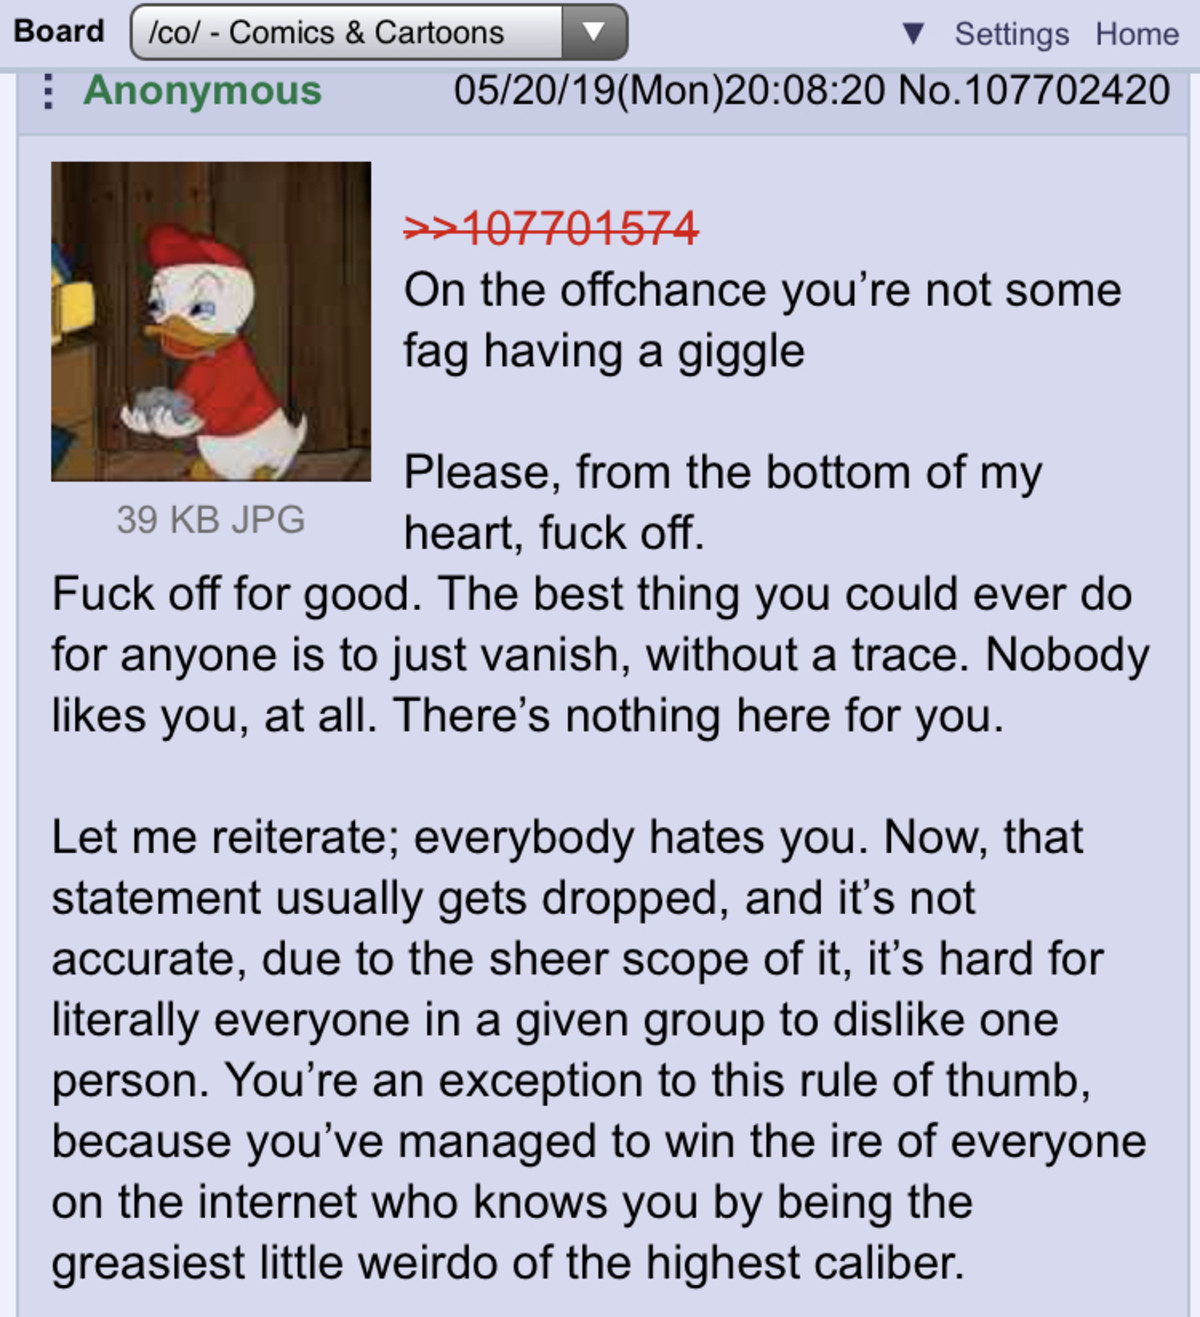 Anon Chews Out He Who Shall Not Be Named. The bread deforrestation guy rears his head in a /co/ thread that had literally nothing to do with him, and anon gets